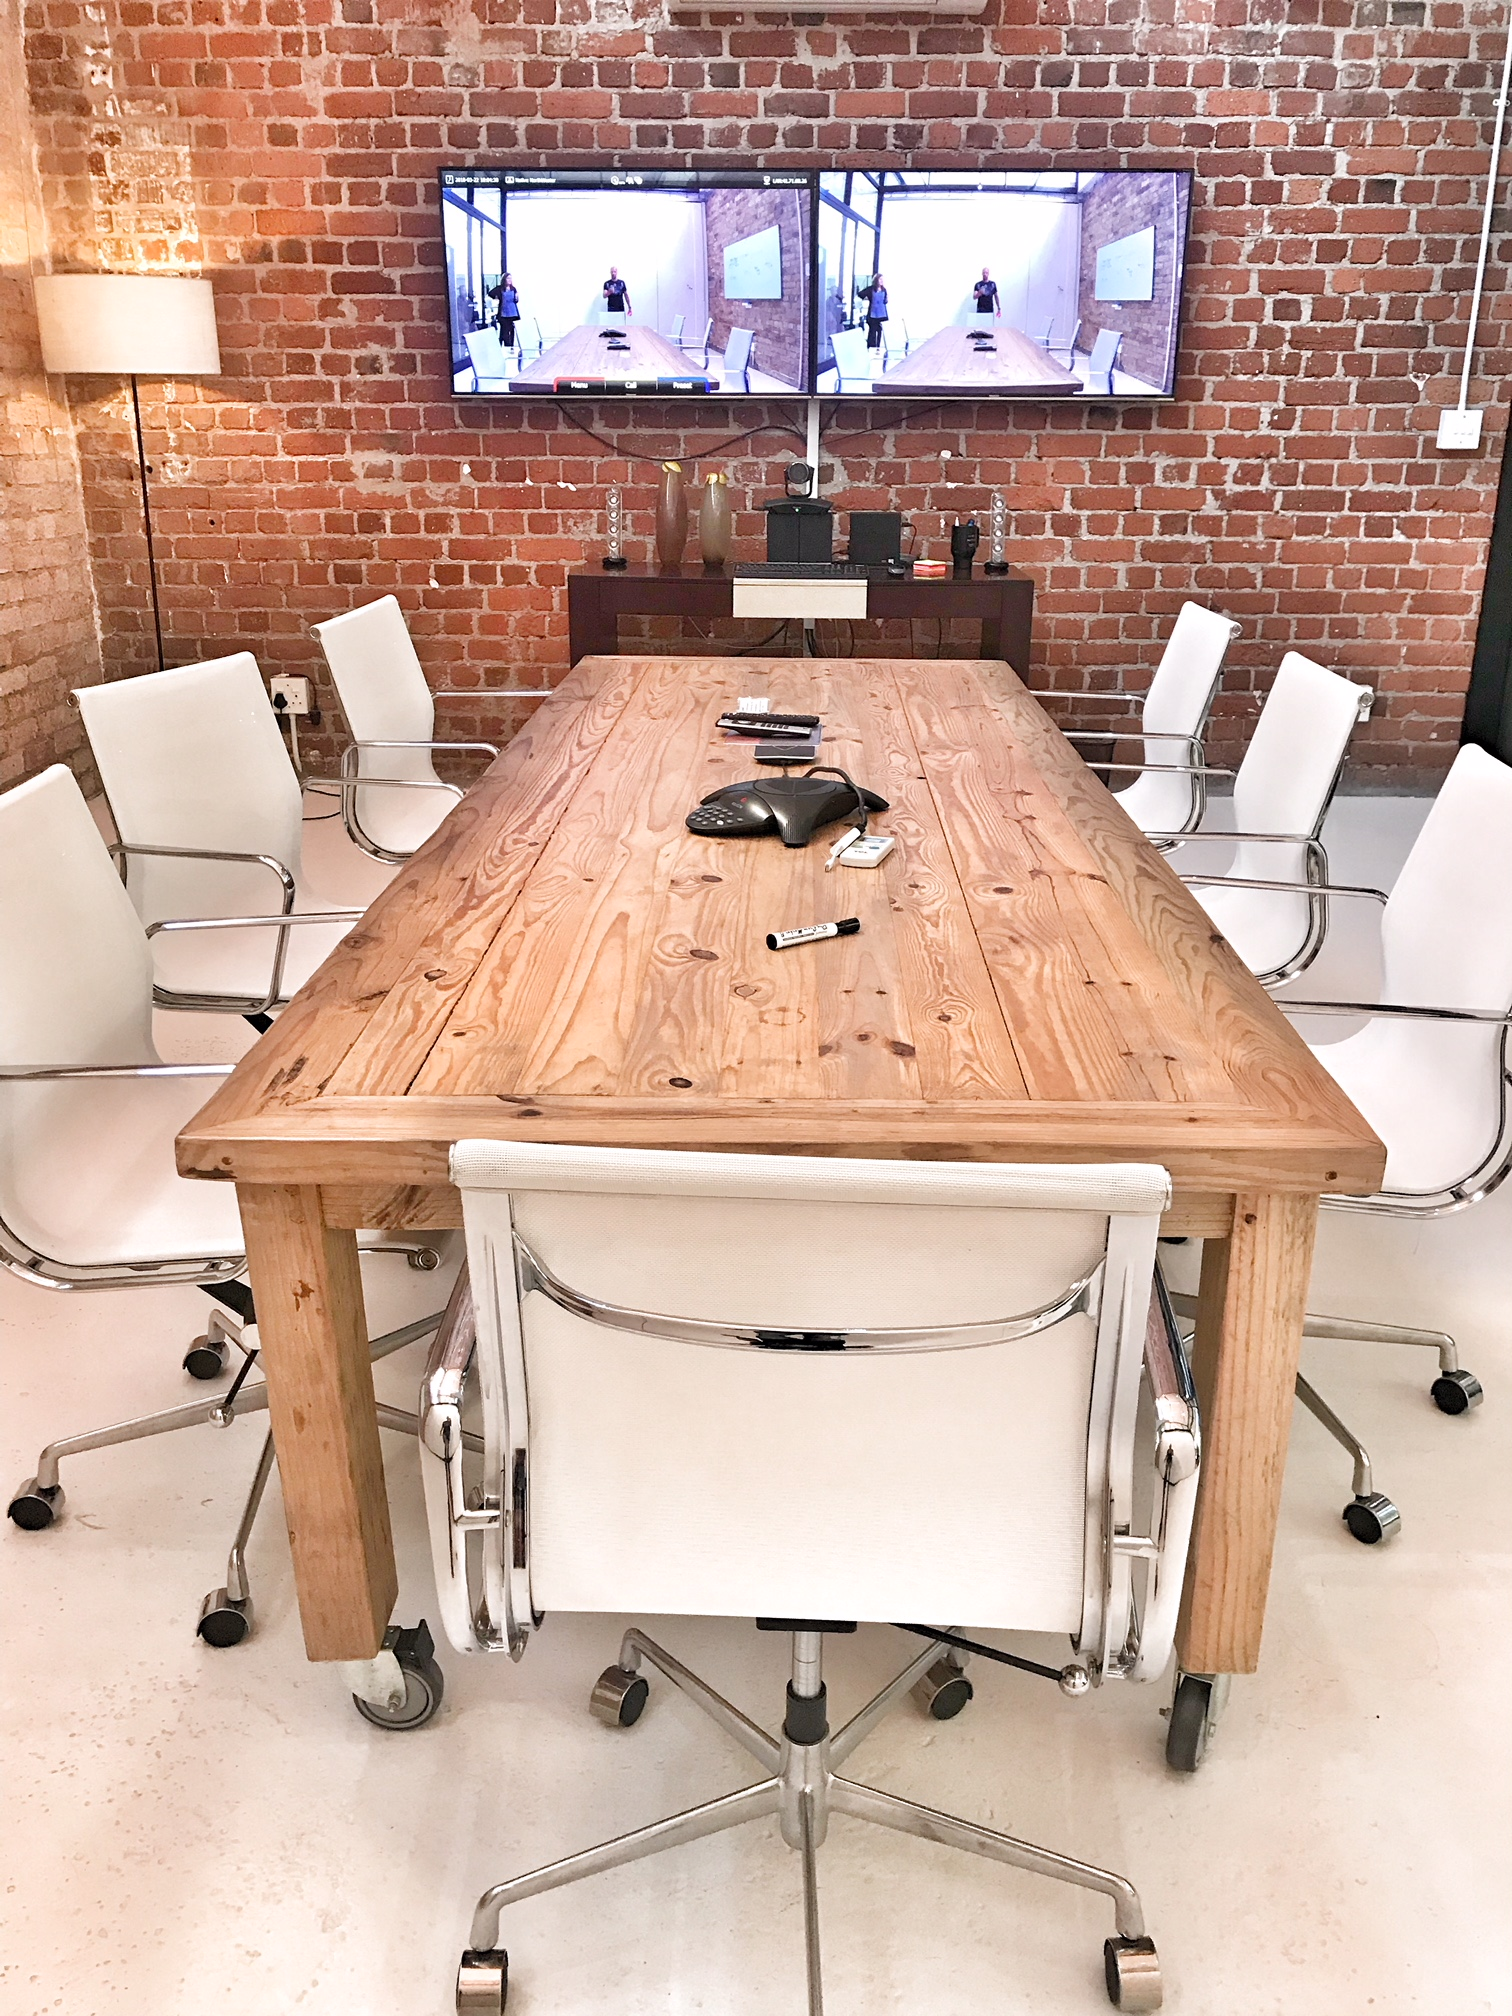 2nd Boardroom table